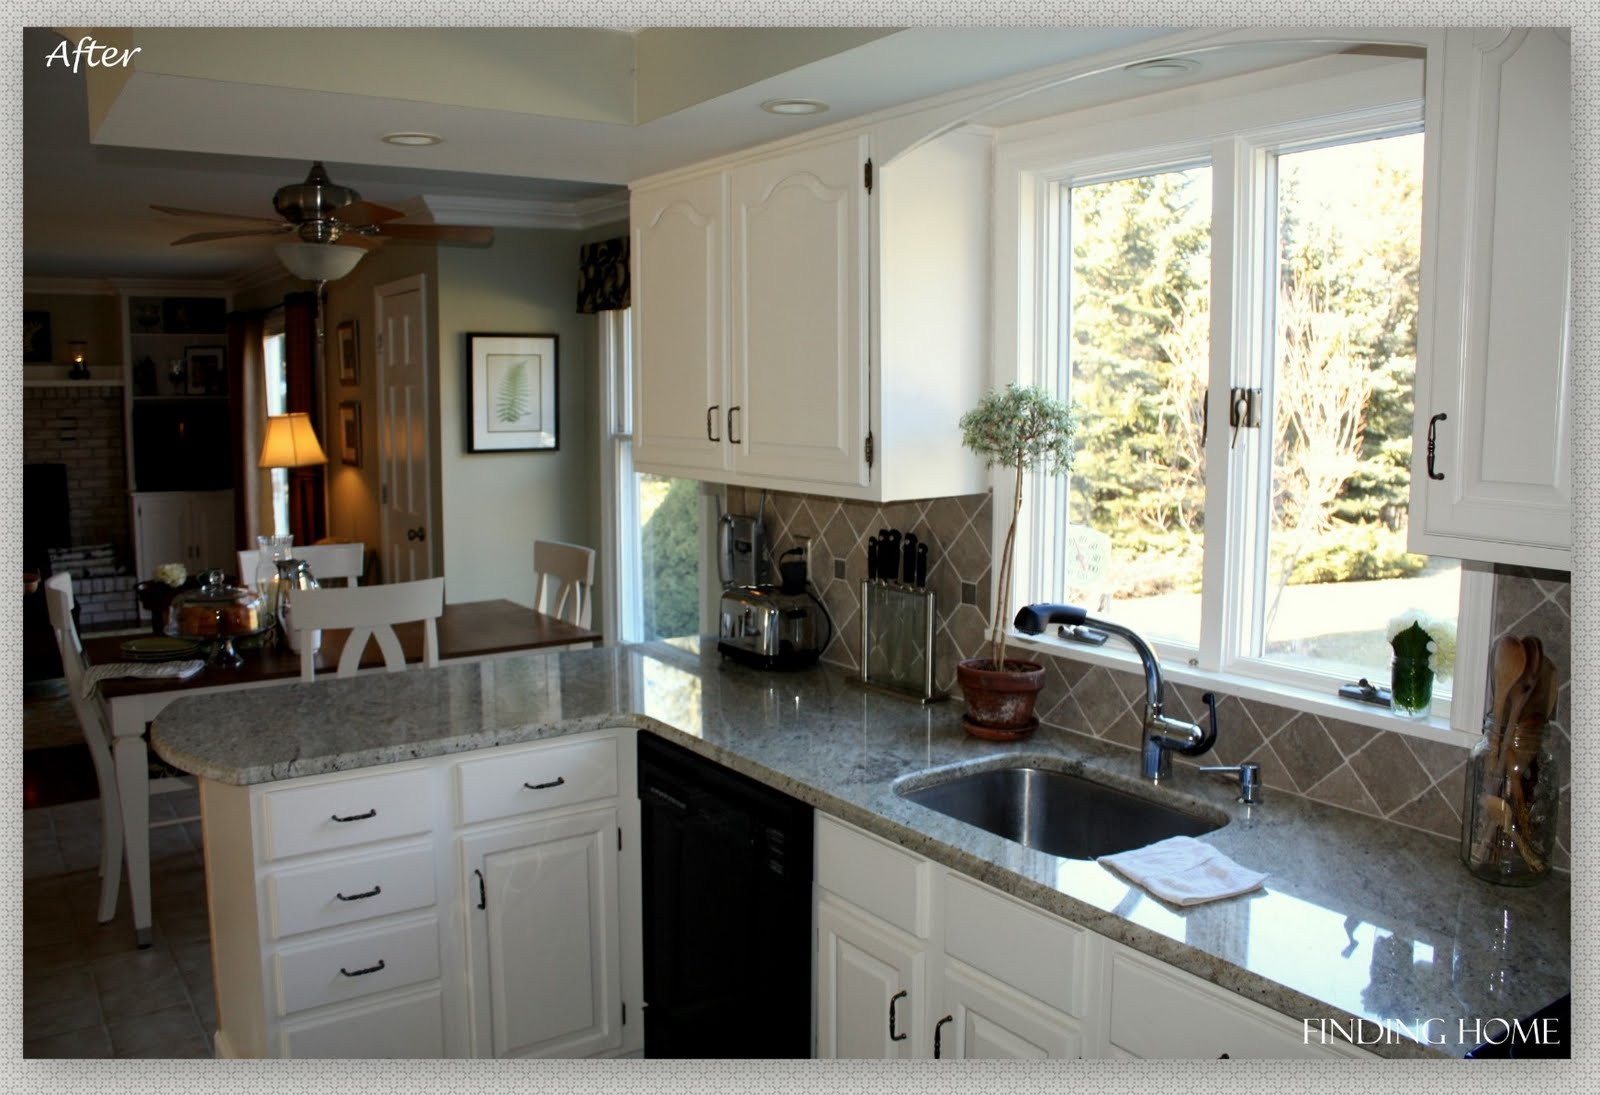 paint kitchen cabinets before and after painting kitchen cabinets white Painting Laminate Kitchen Cabinets